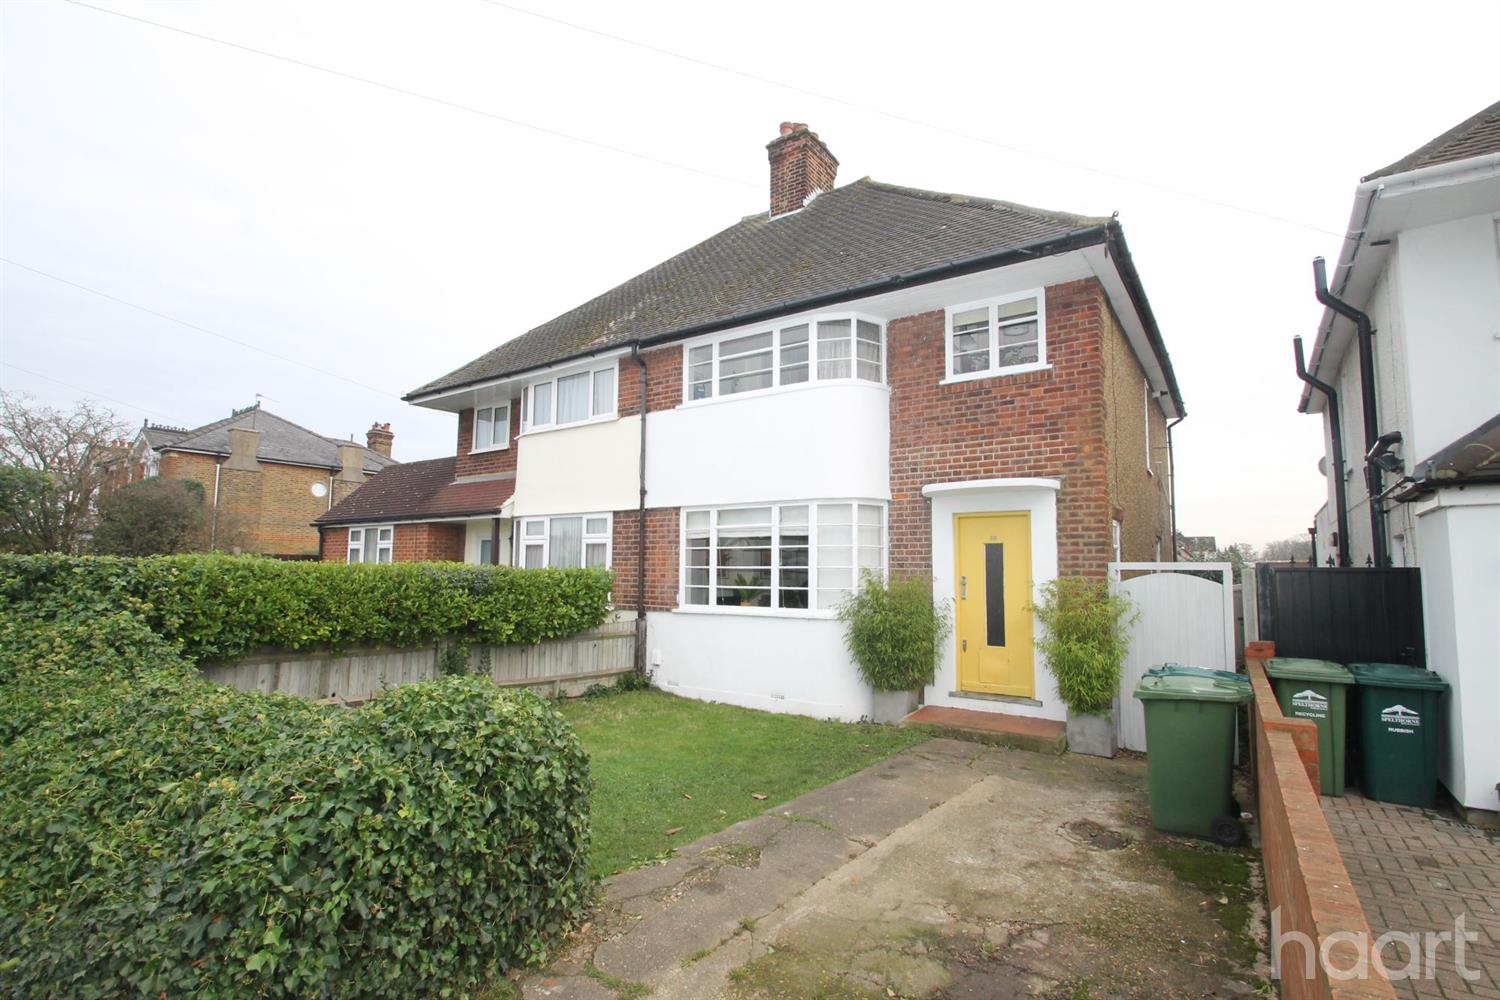 E O M S J G Ballard 39 S Old House In Shepperton Up For Sale